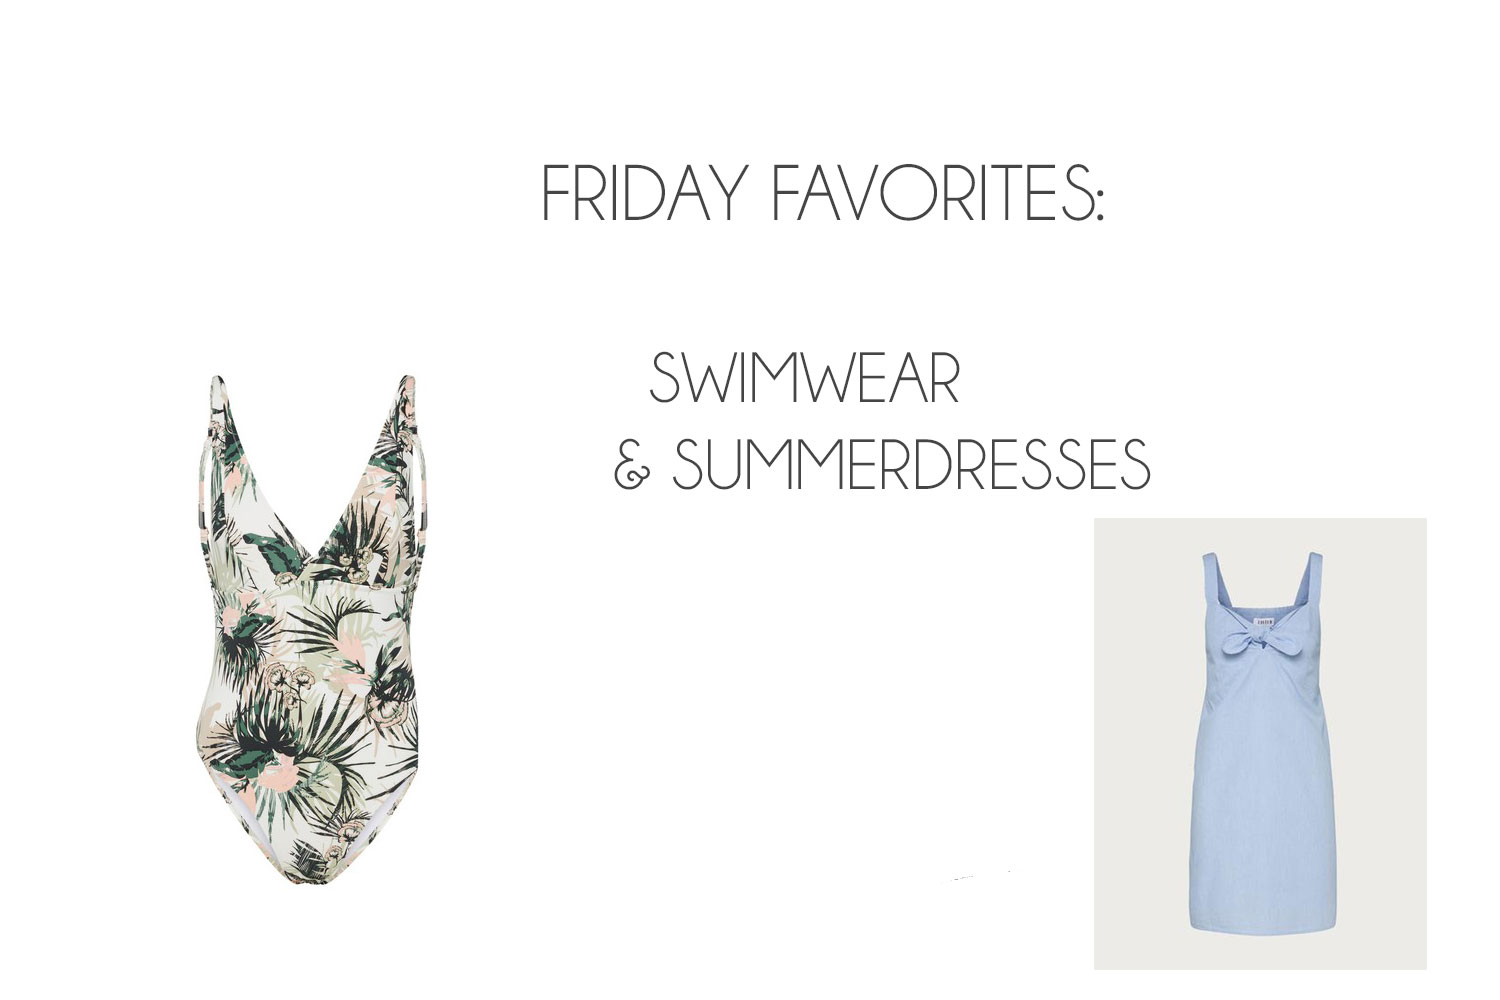 Friday Favorites: Swimwear & Summerdresses - Friday Favorites 4